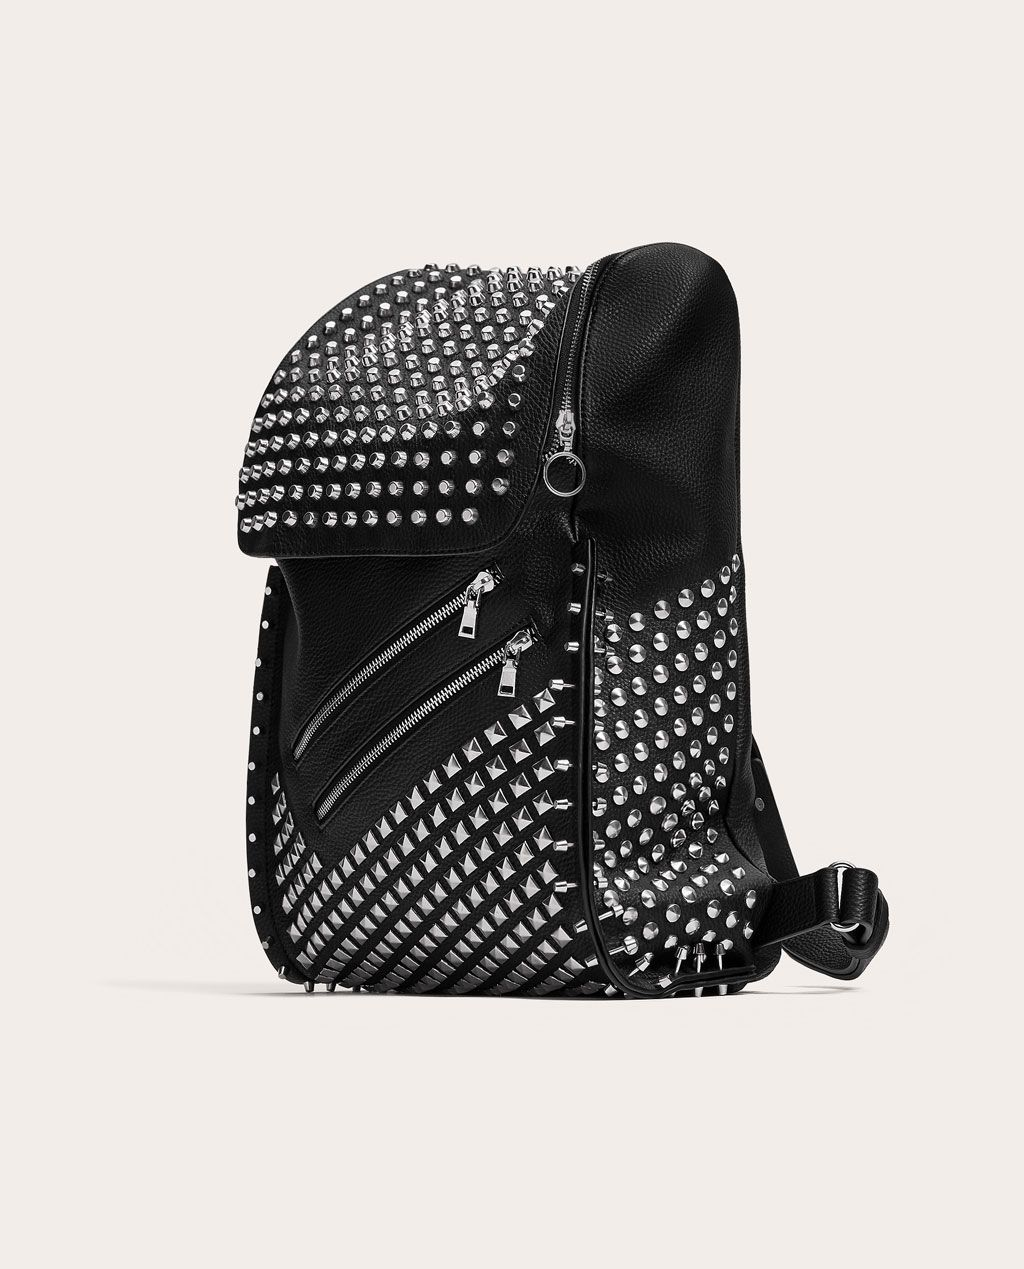 BLACK STUDDED BACKPACK - SHOES AND ACCESSORIES-SALE-MAN